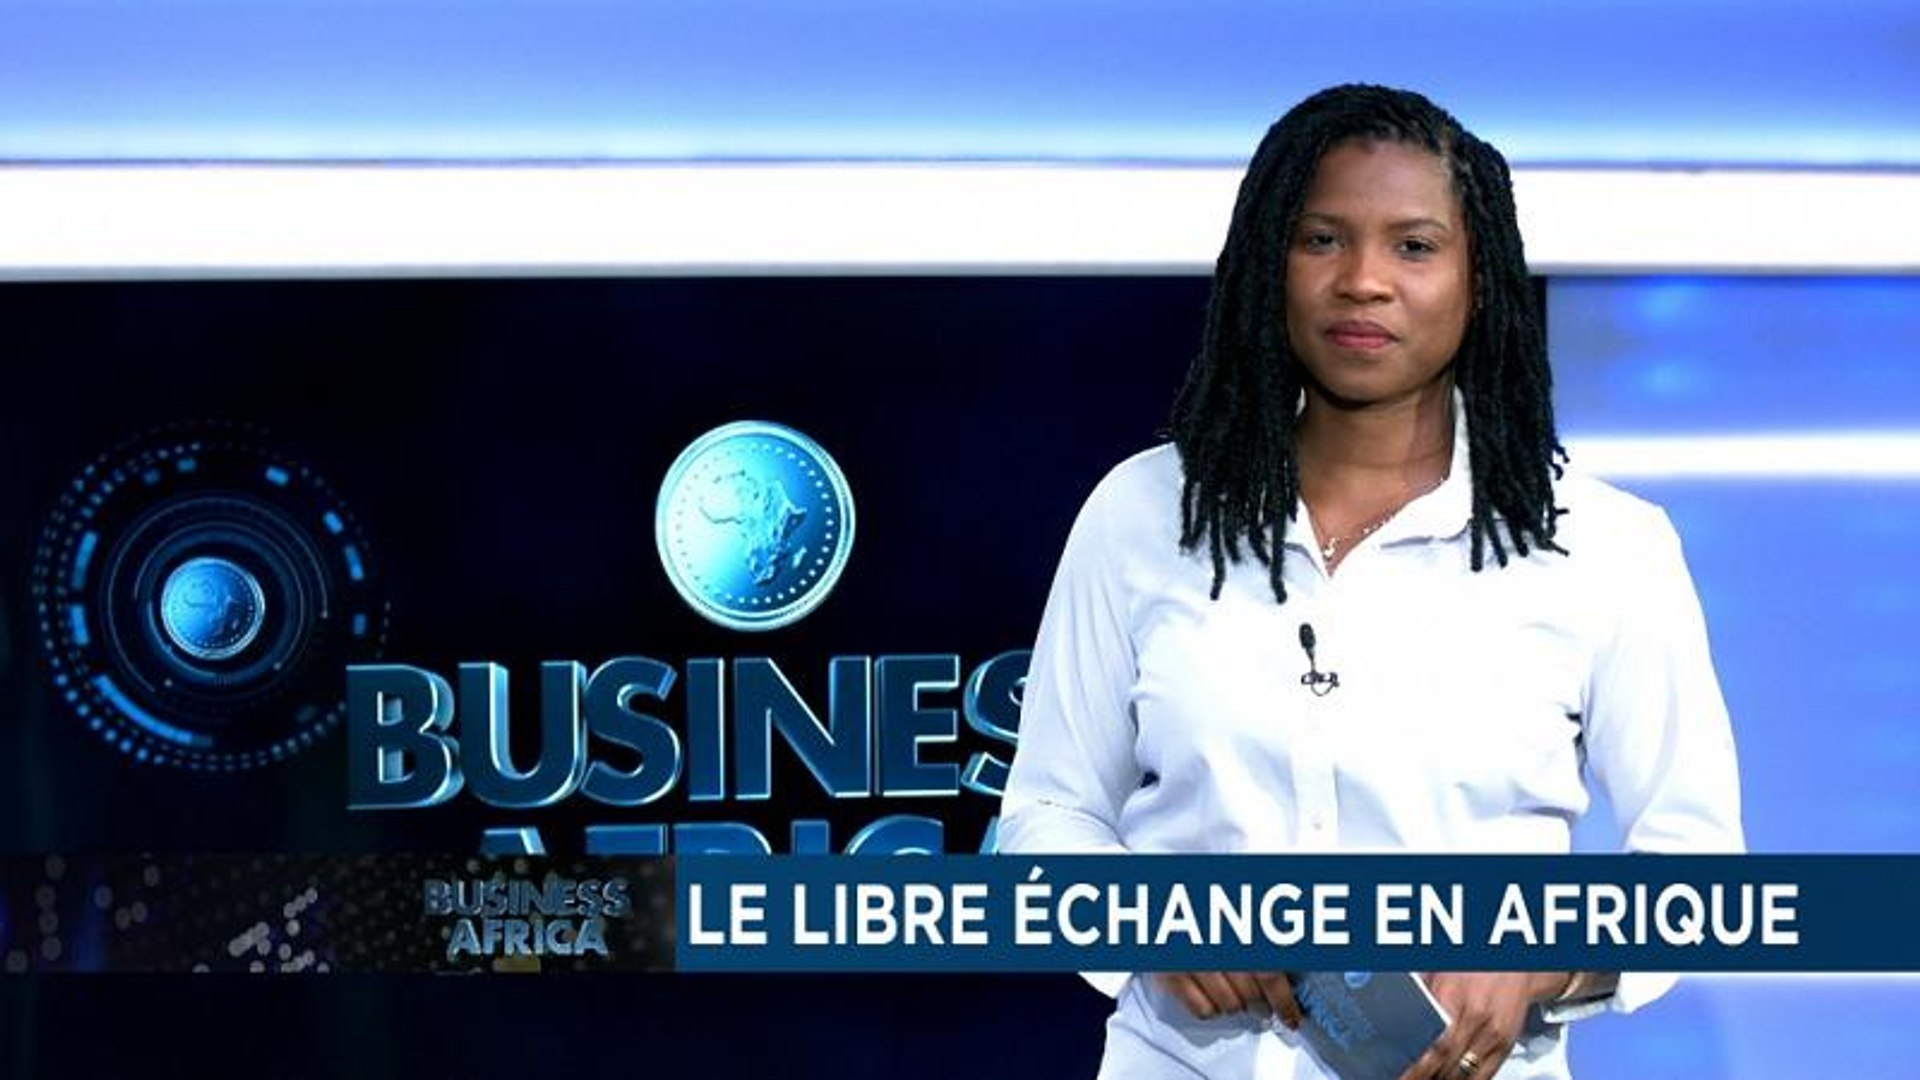 Free trade in Africa [Business Africa]